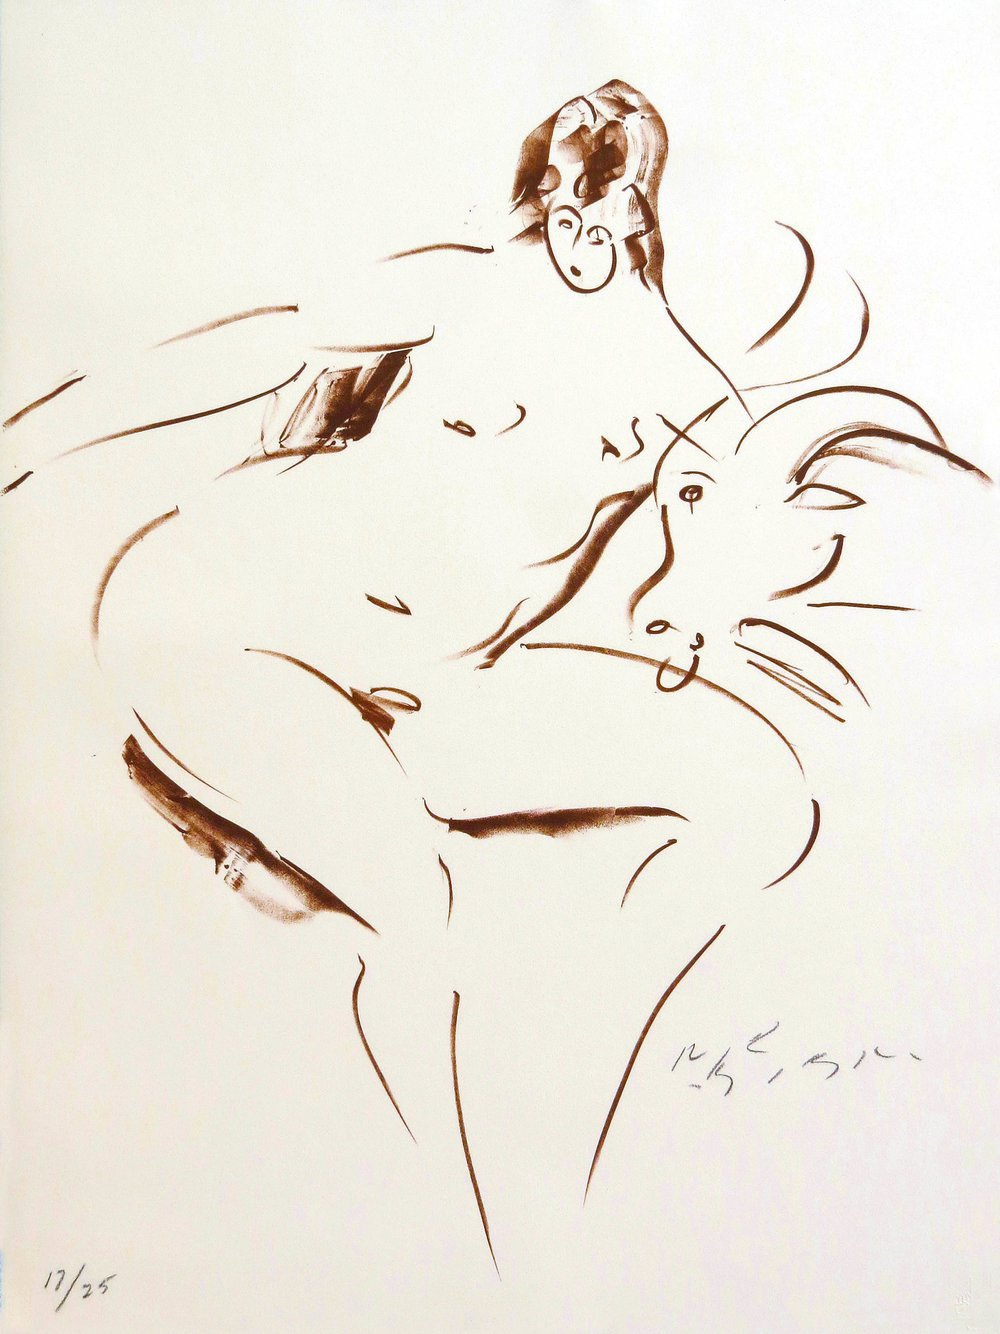 "Sitting Nymph, from Land of the Gods Suite     1980, lithograph, printed in sanguine ink on buff Arches paper in an edition of 25 22.5 x 30"" Nakian Estate F-706146"